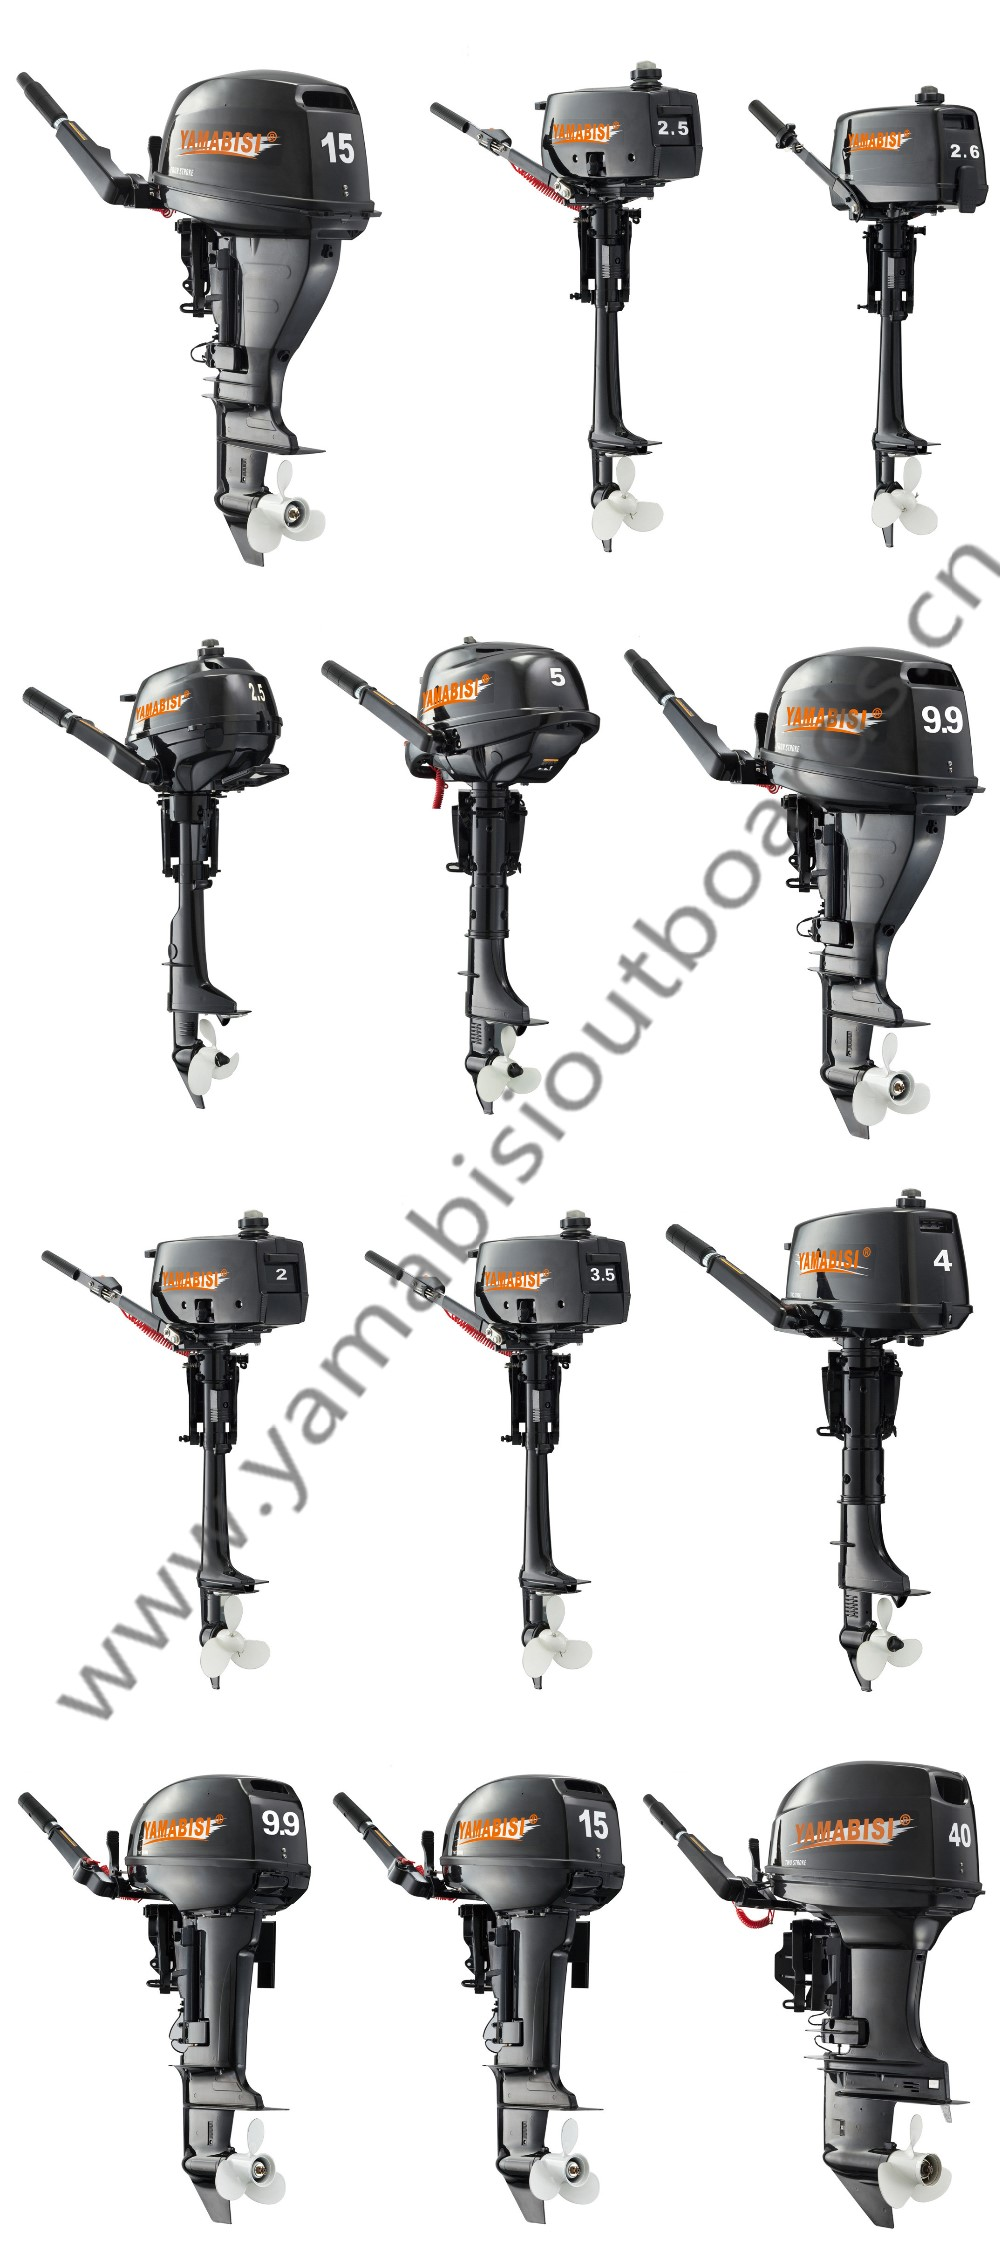 CE-Approved 4 stroke YAMABISI outboard motor/engine (2.5hp